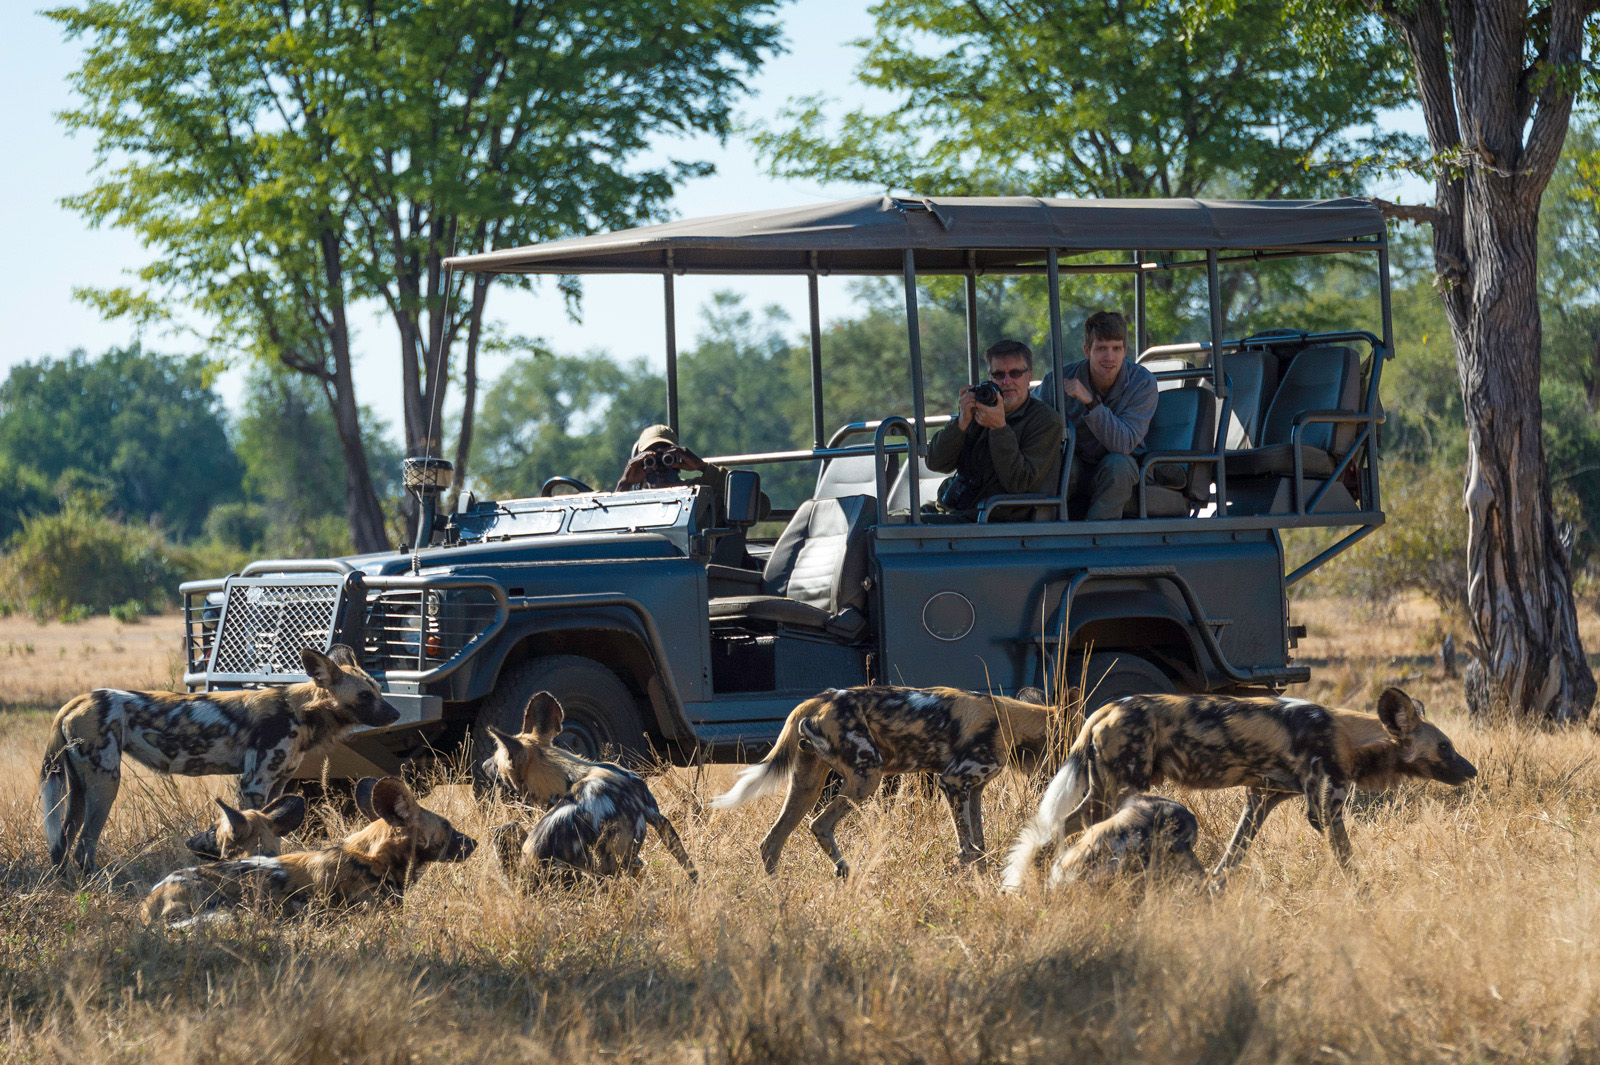 Wild dogs are sighted regularly on safaris in the Luangwa Valley today.  Photo by Dana Allen courtesy of The Bushcamp Company